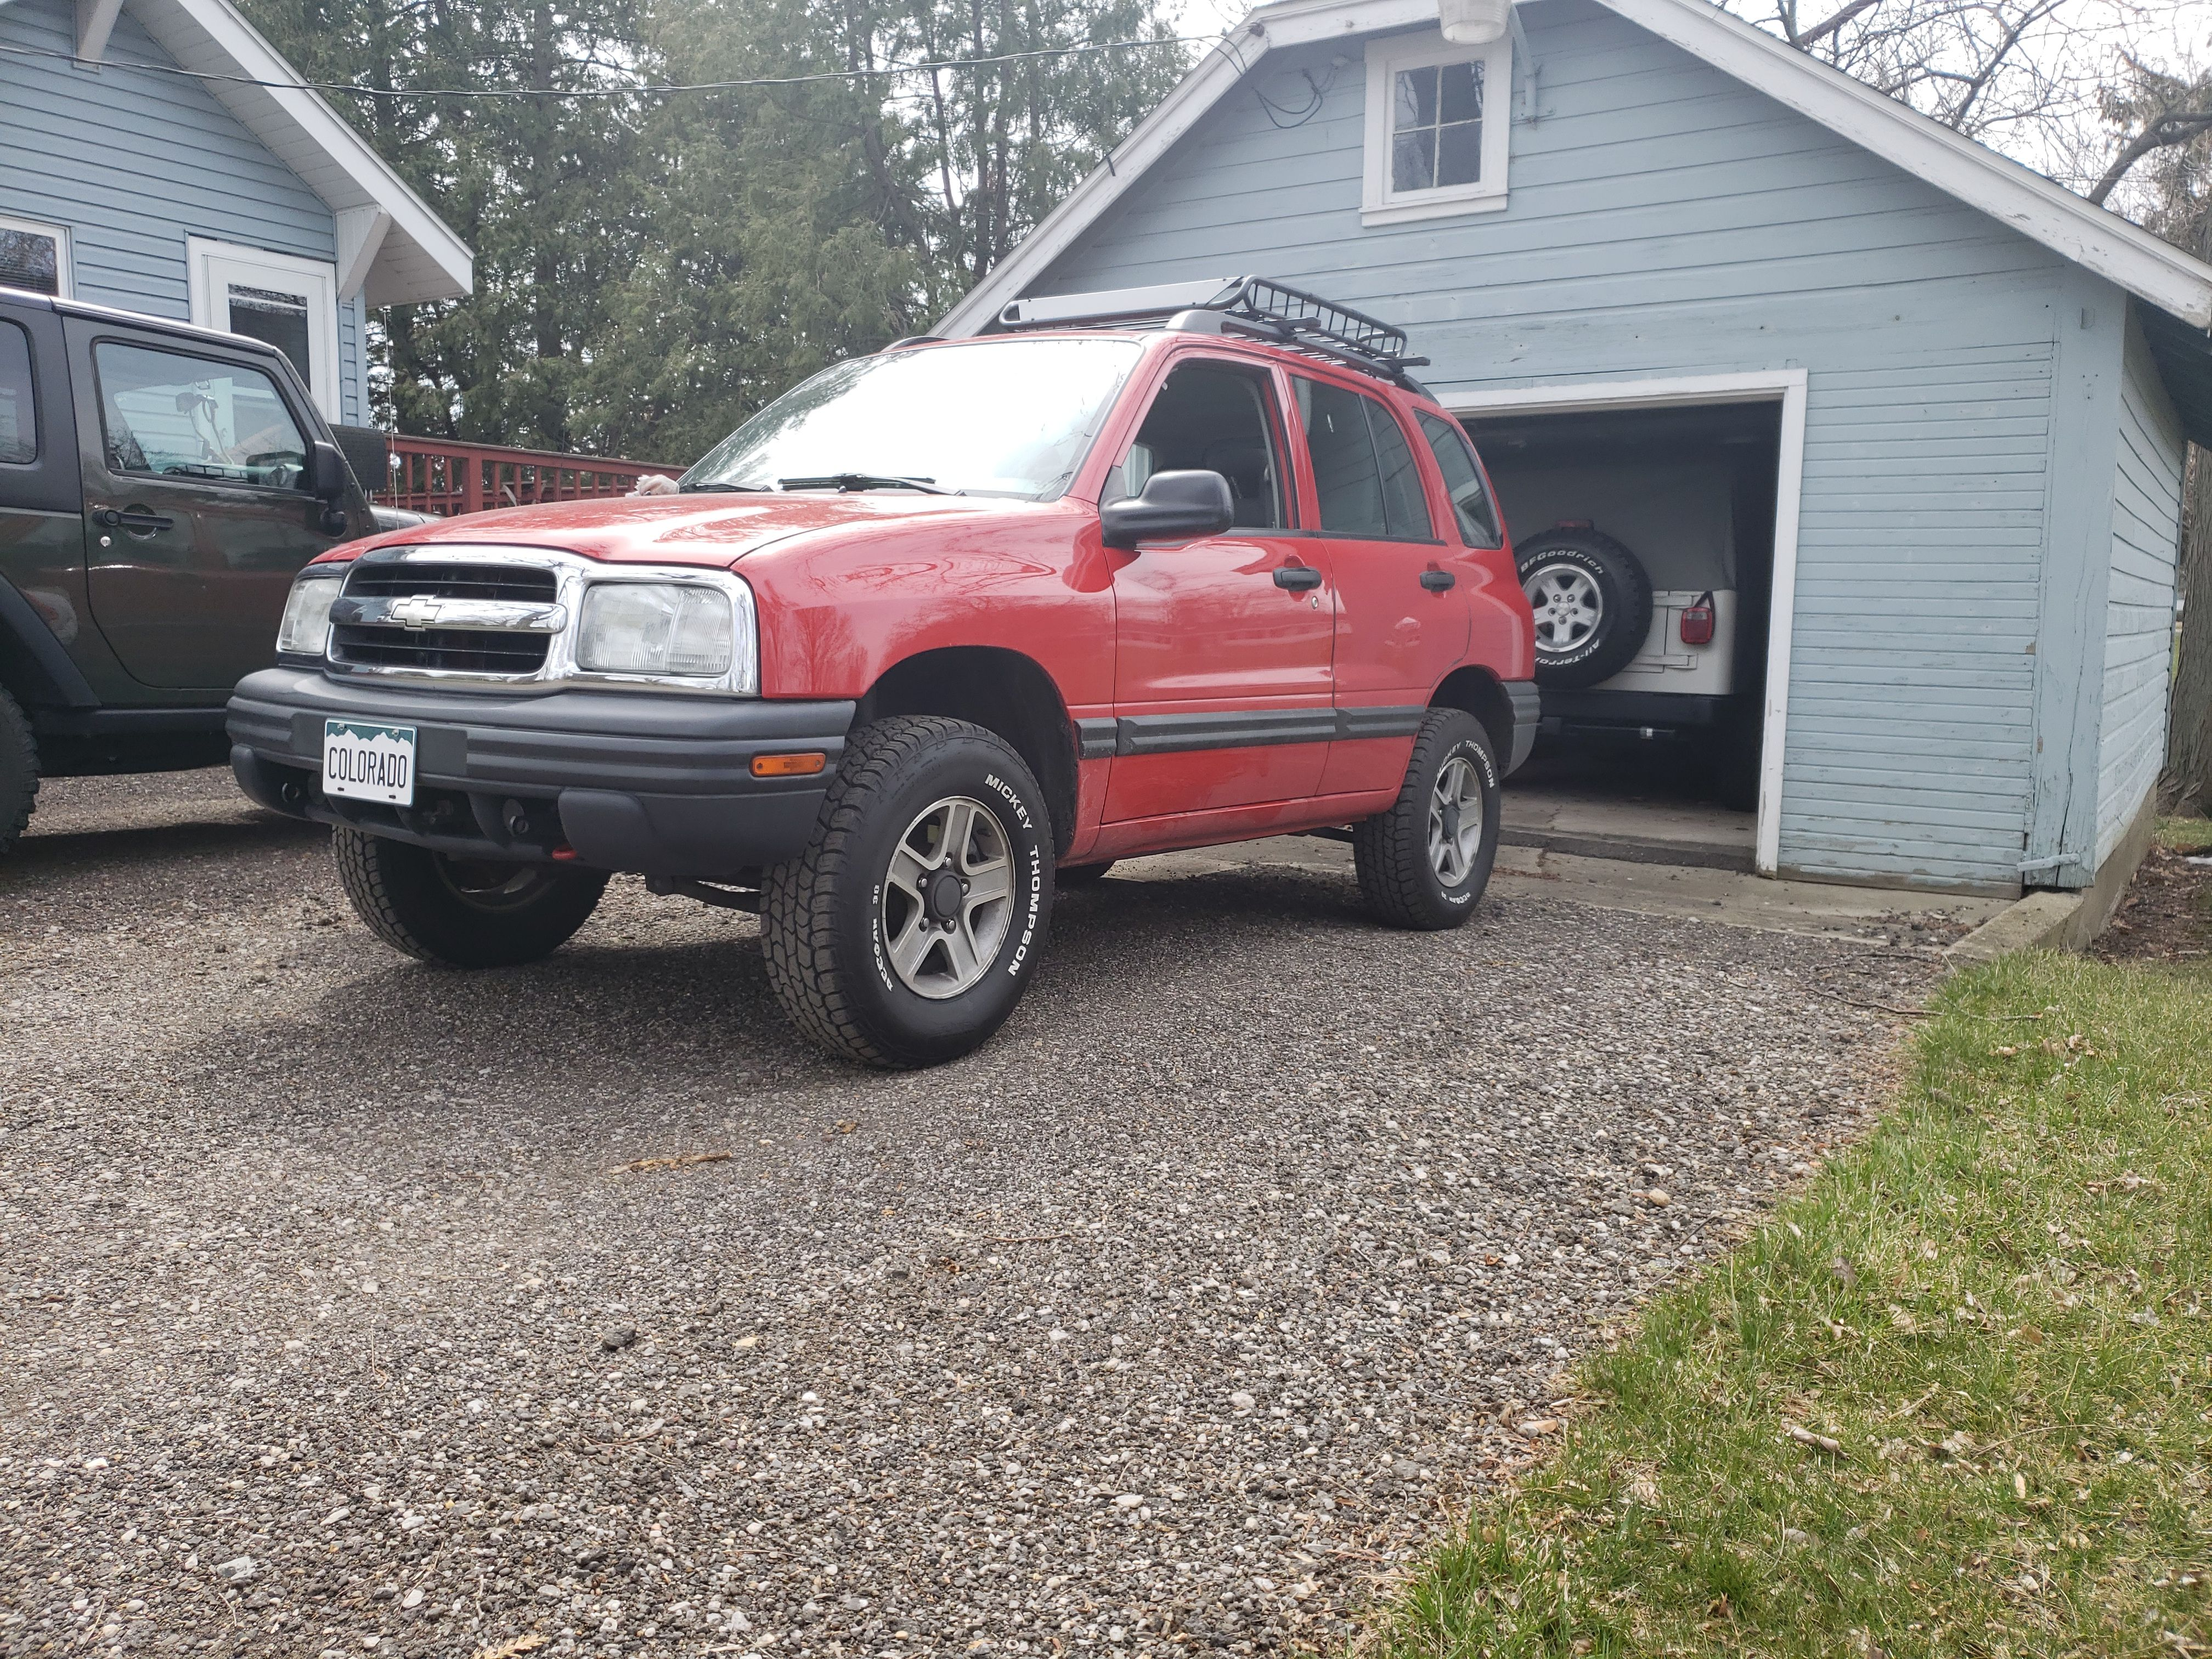 hight resolution of 2003 chevy tracker lifted with 235 mickey thompsons